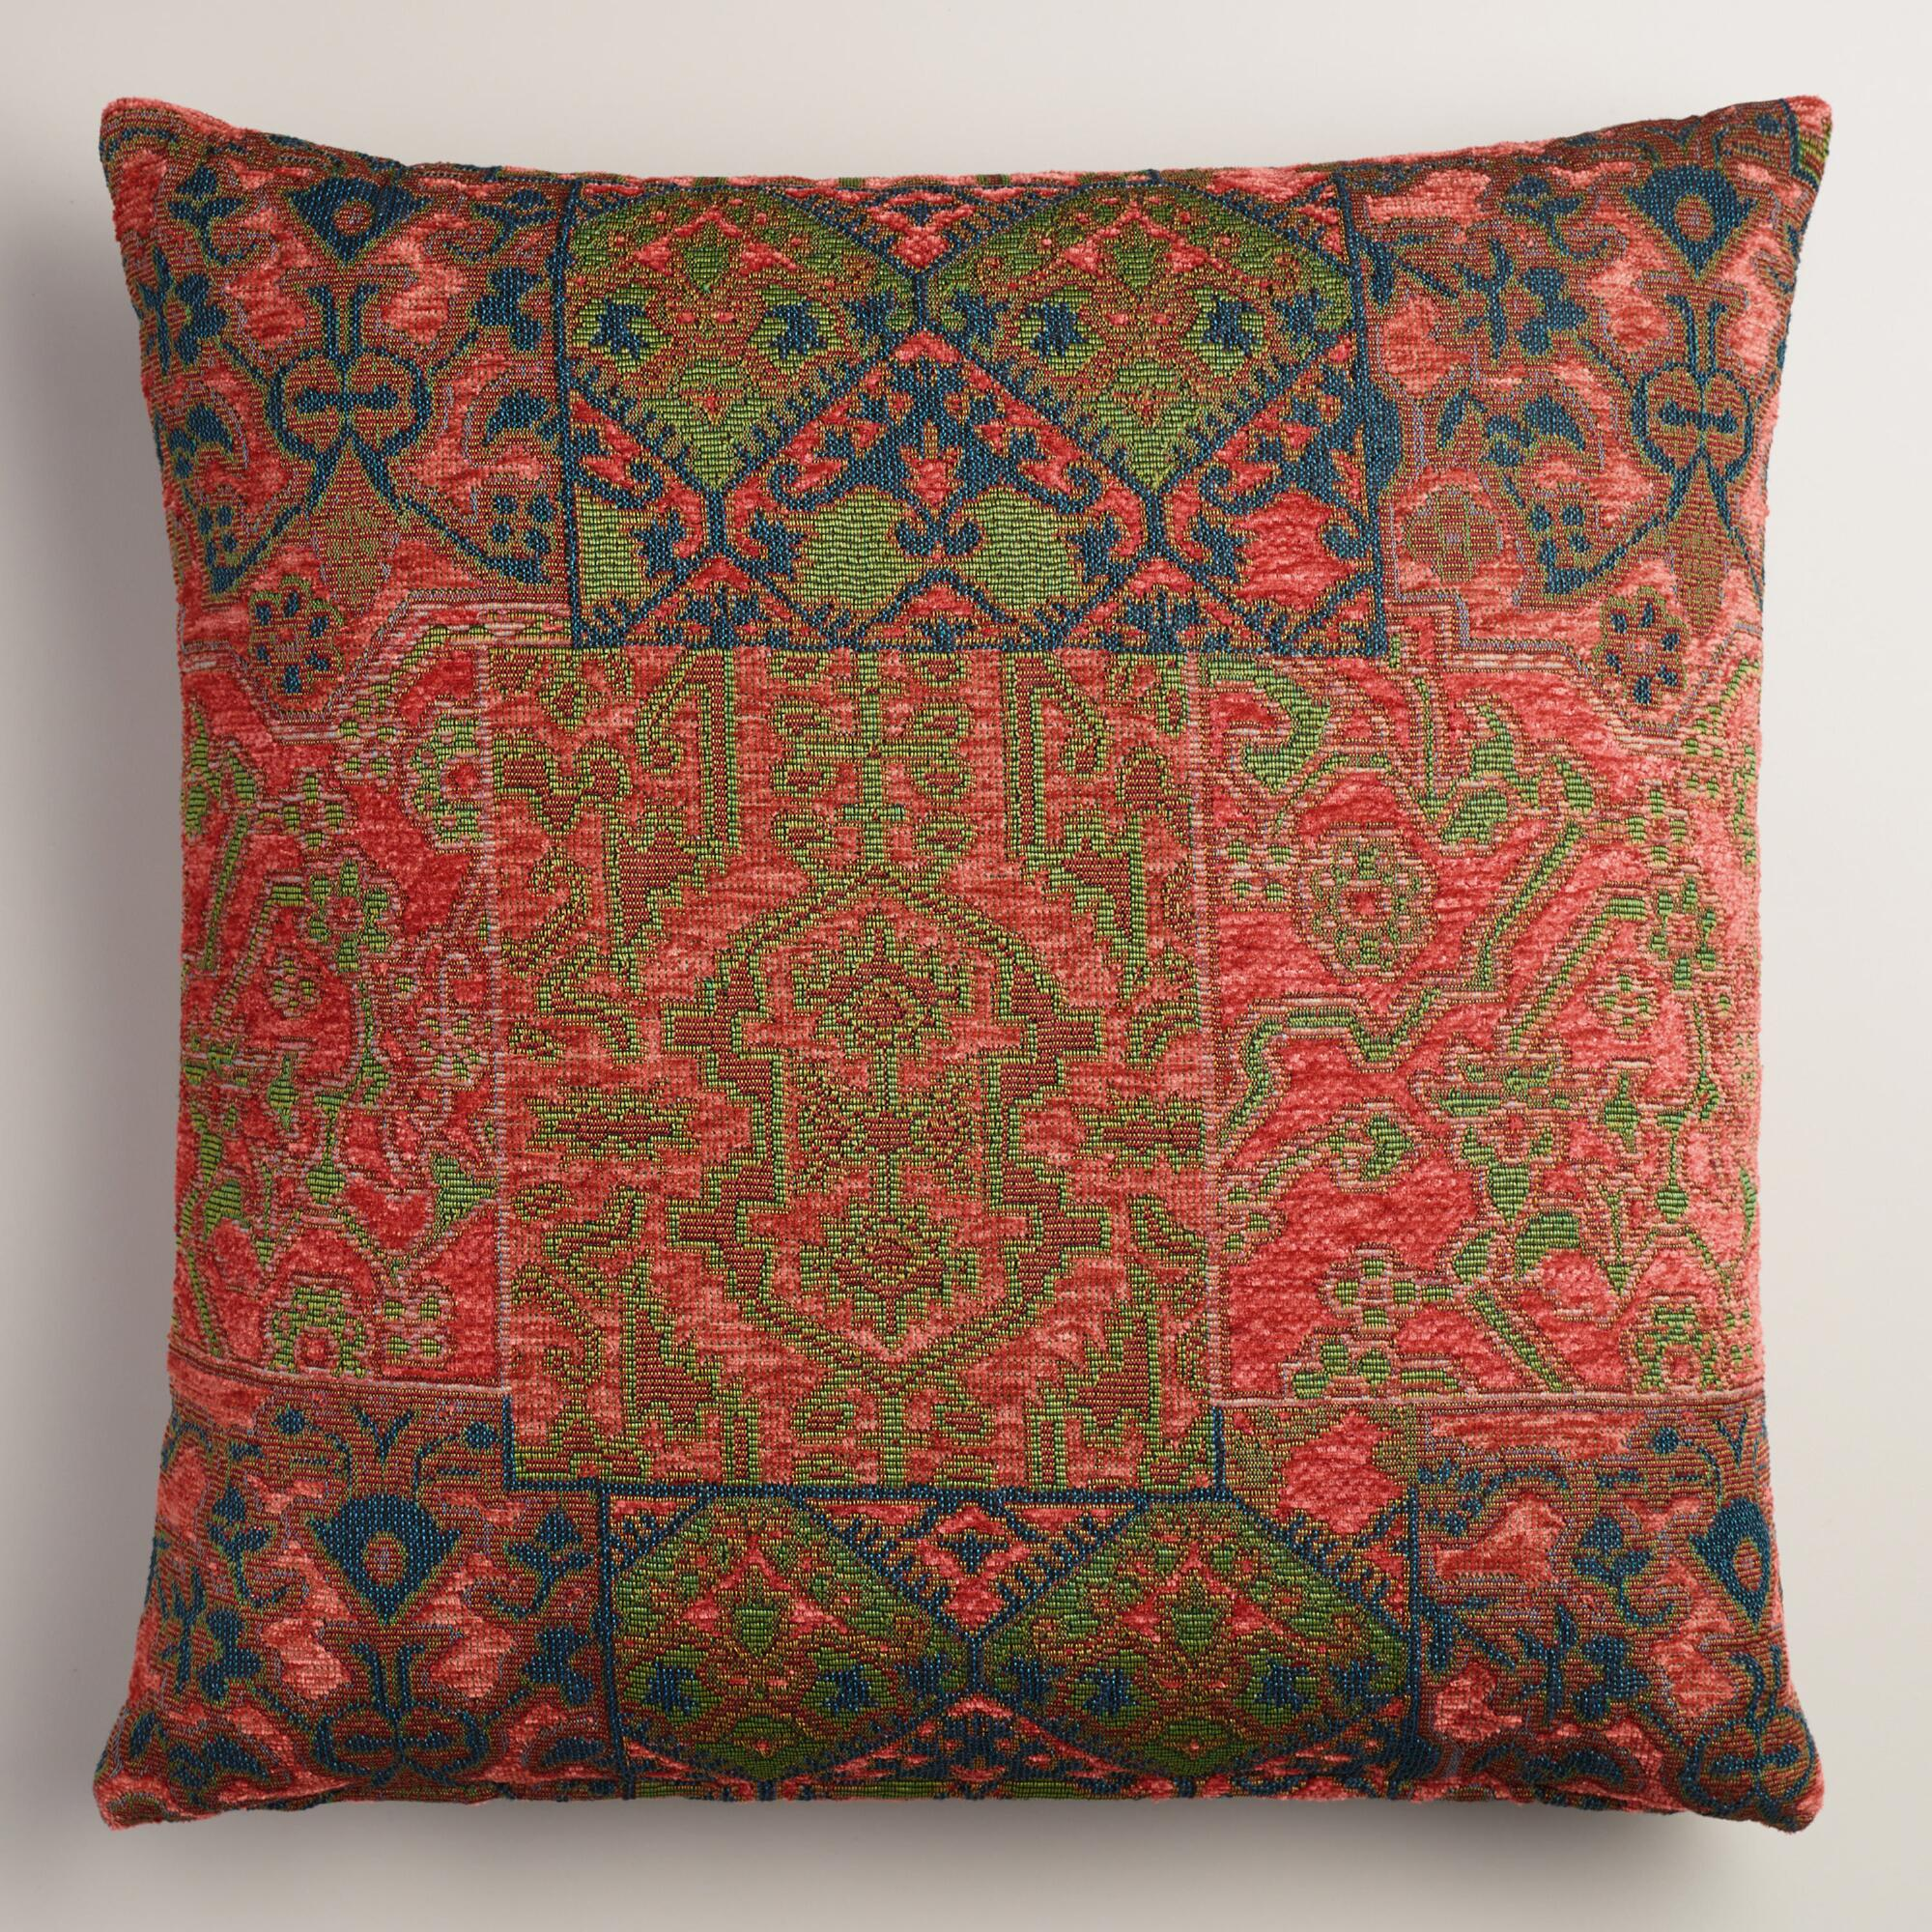 Jacquard Decorative Pillows : Orange and Red Marrakesh Jacquard Throw Pillow World Market